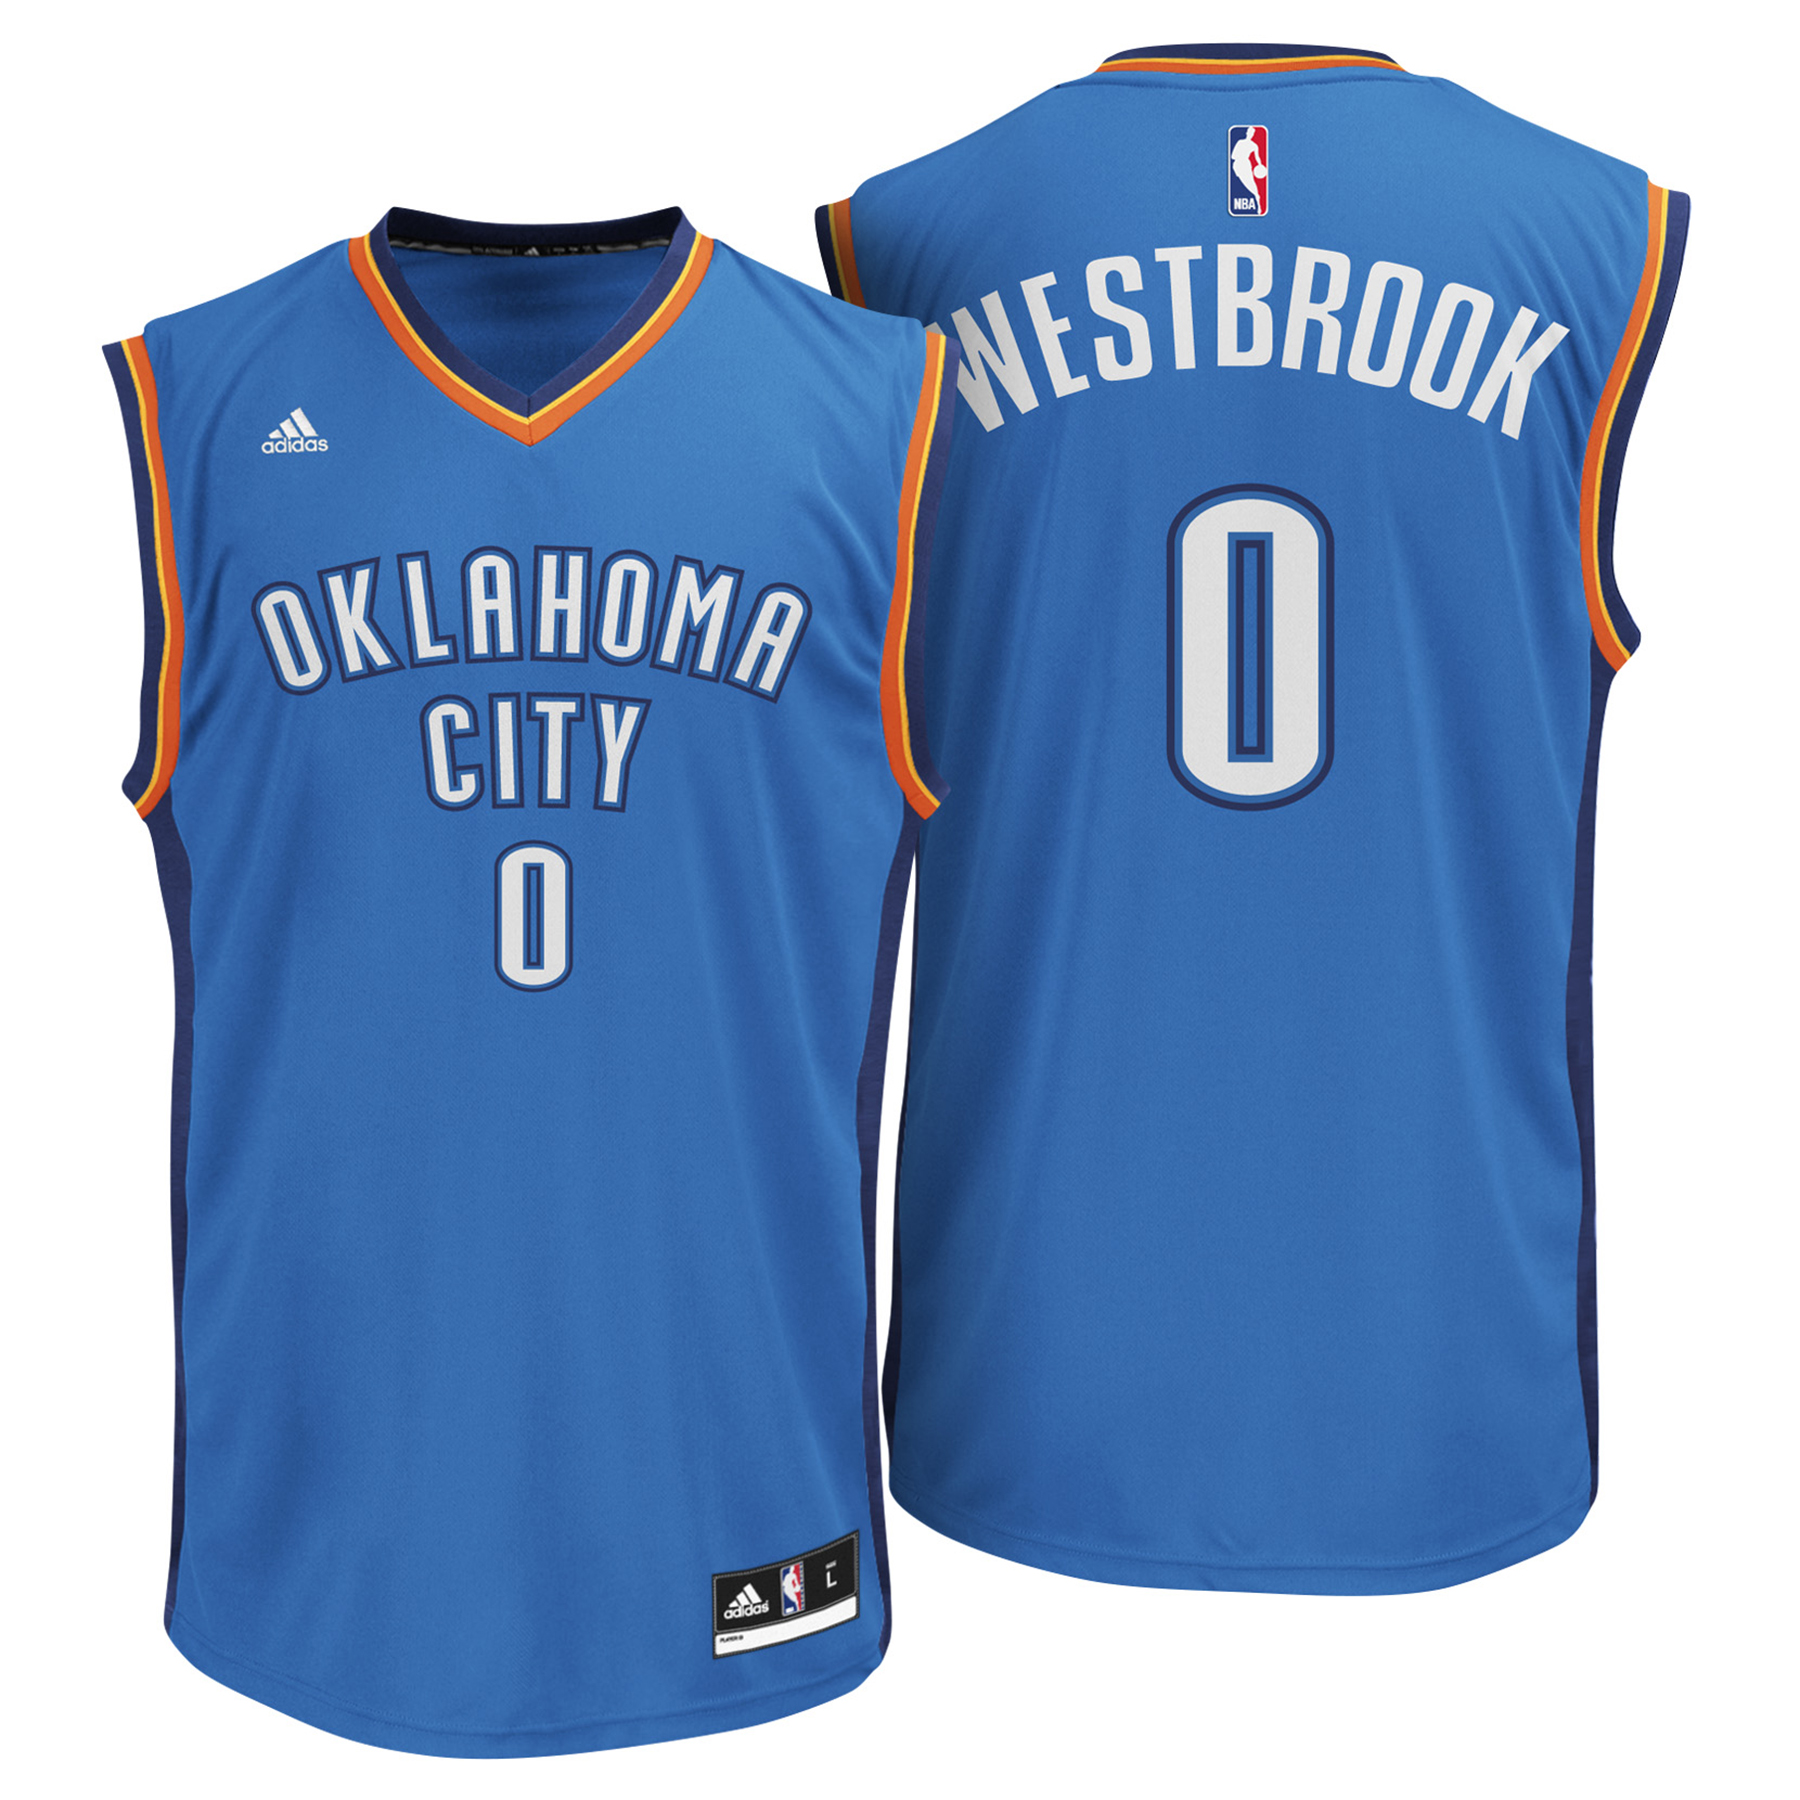 Oklahoma City Thunder Road Replica Jersey - Russell Westbrook - Youth